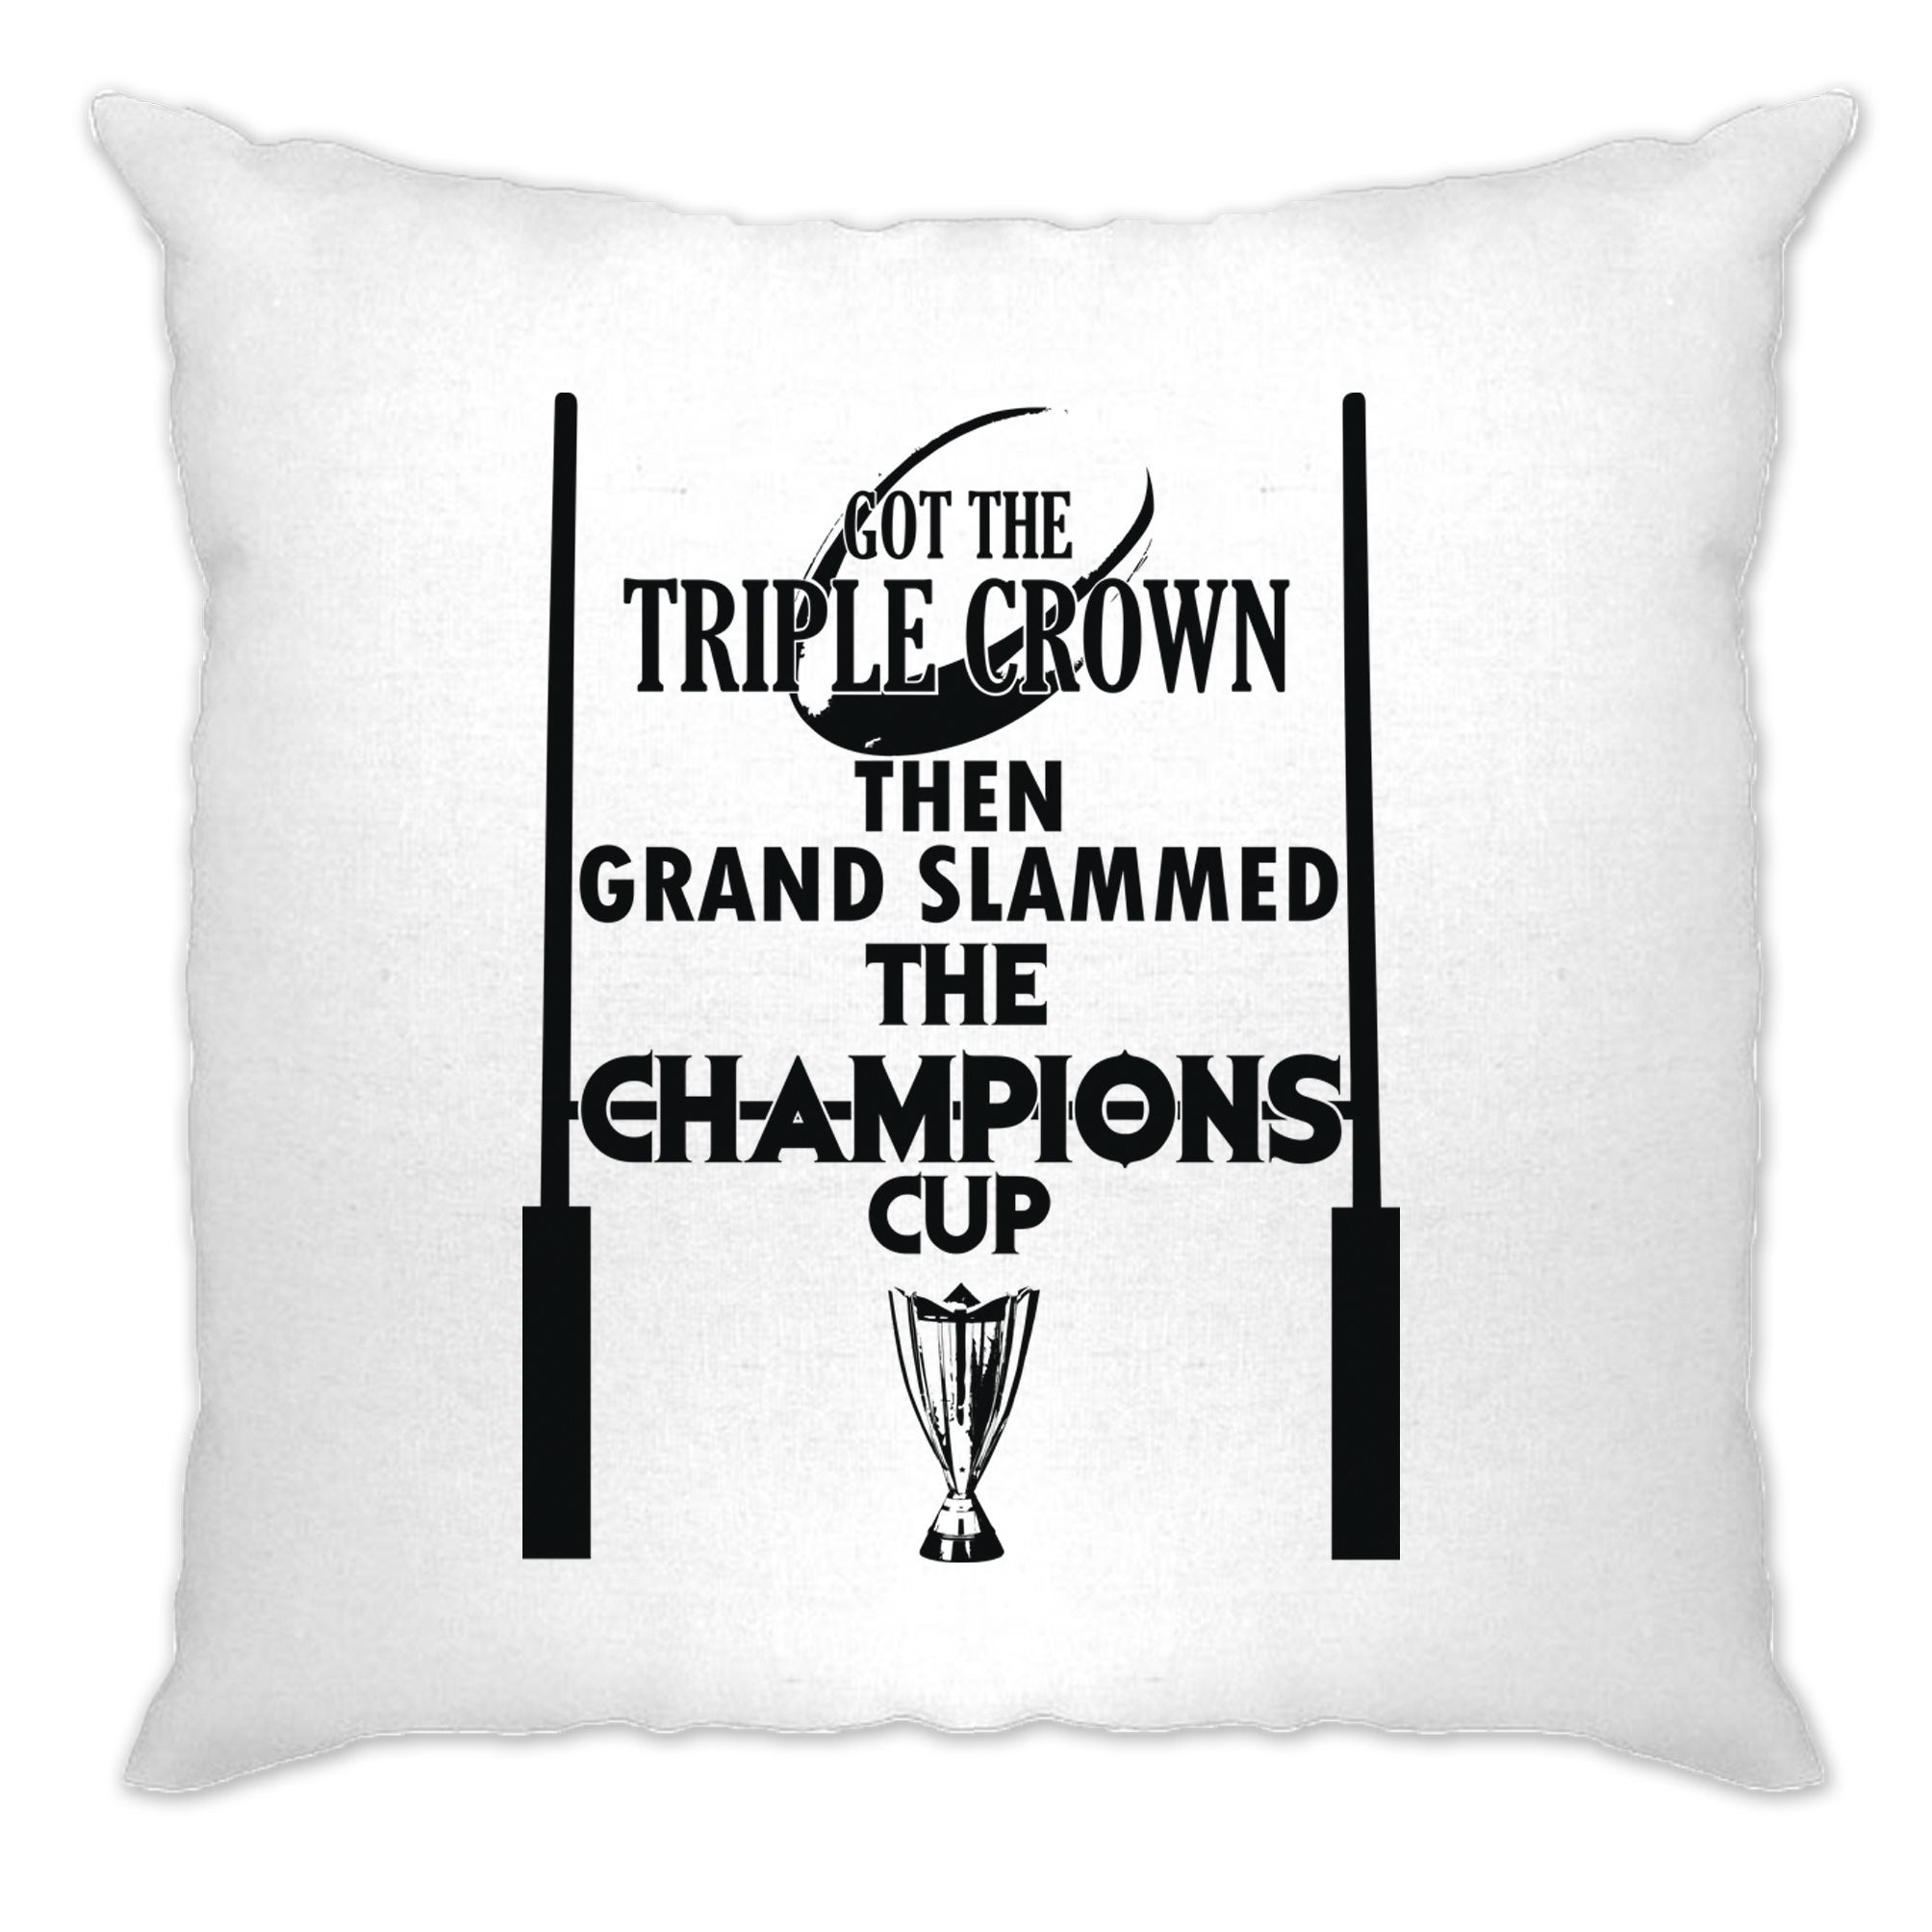 Triple Crown Cushion Cover Then Grand Slammed Champions Cup